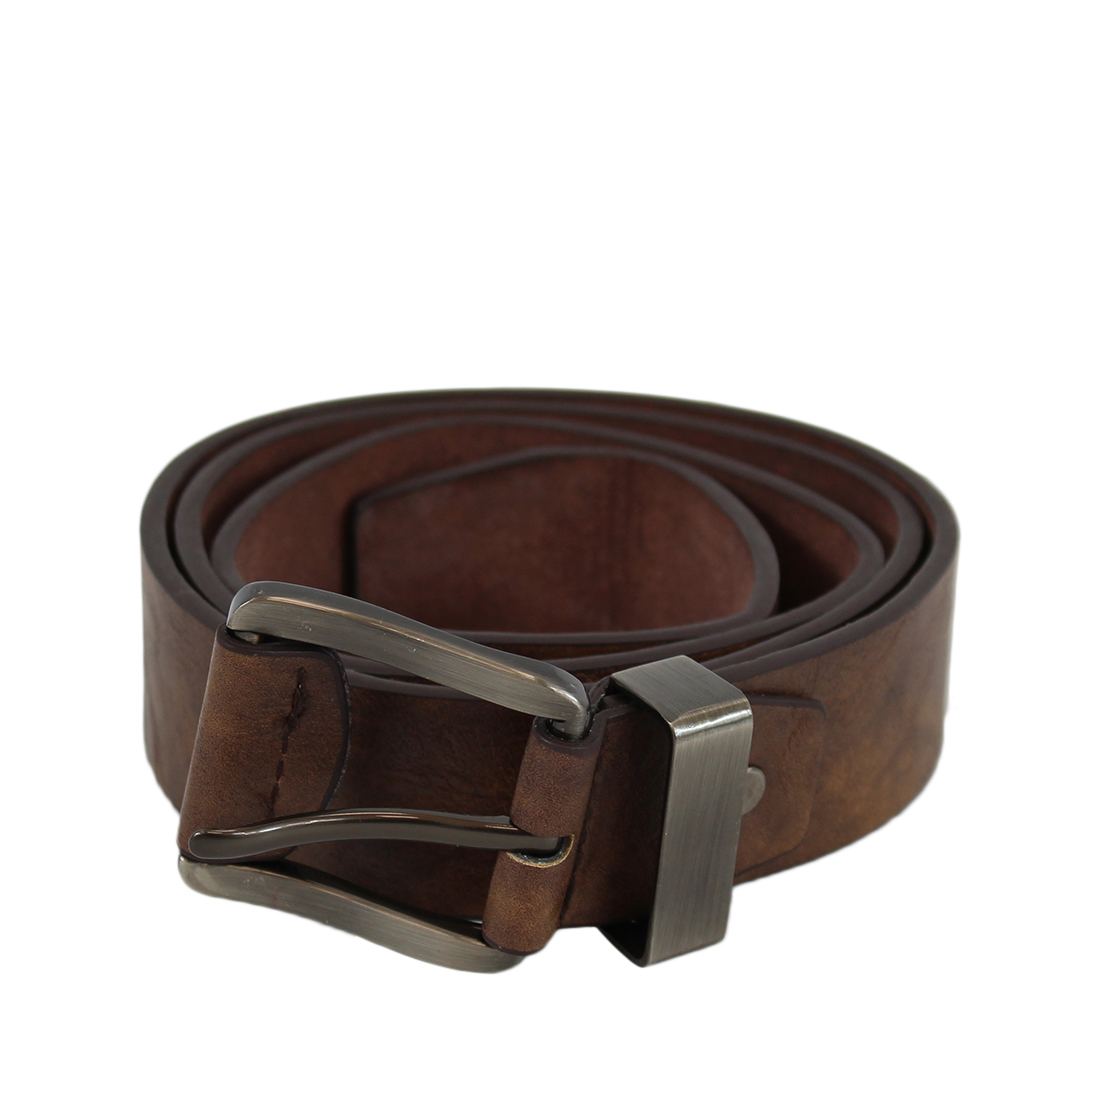 Plain wide leather belt with silver leathered buckle